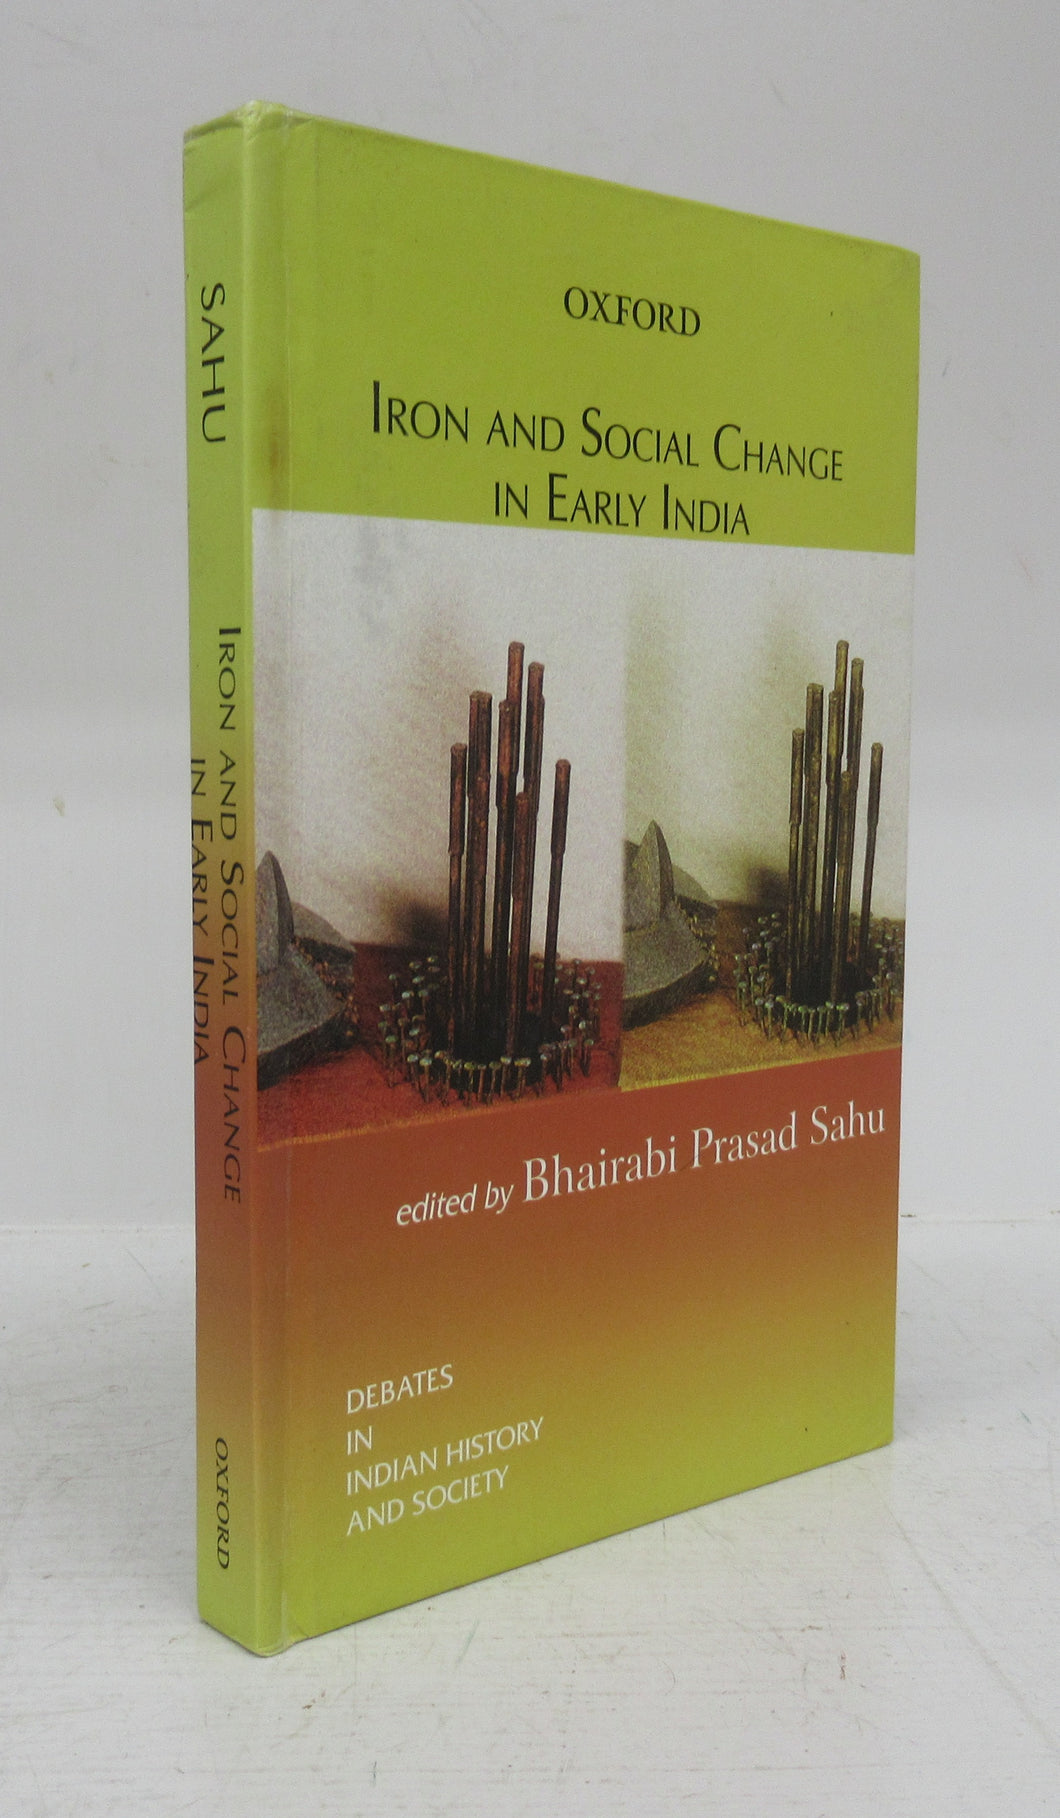 Iron and Social Change in Early India